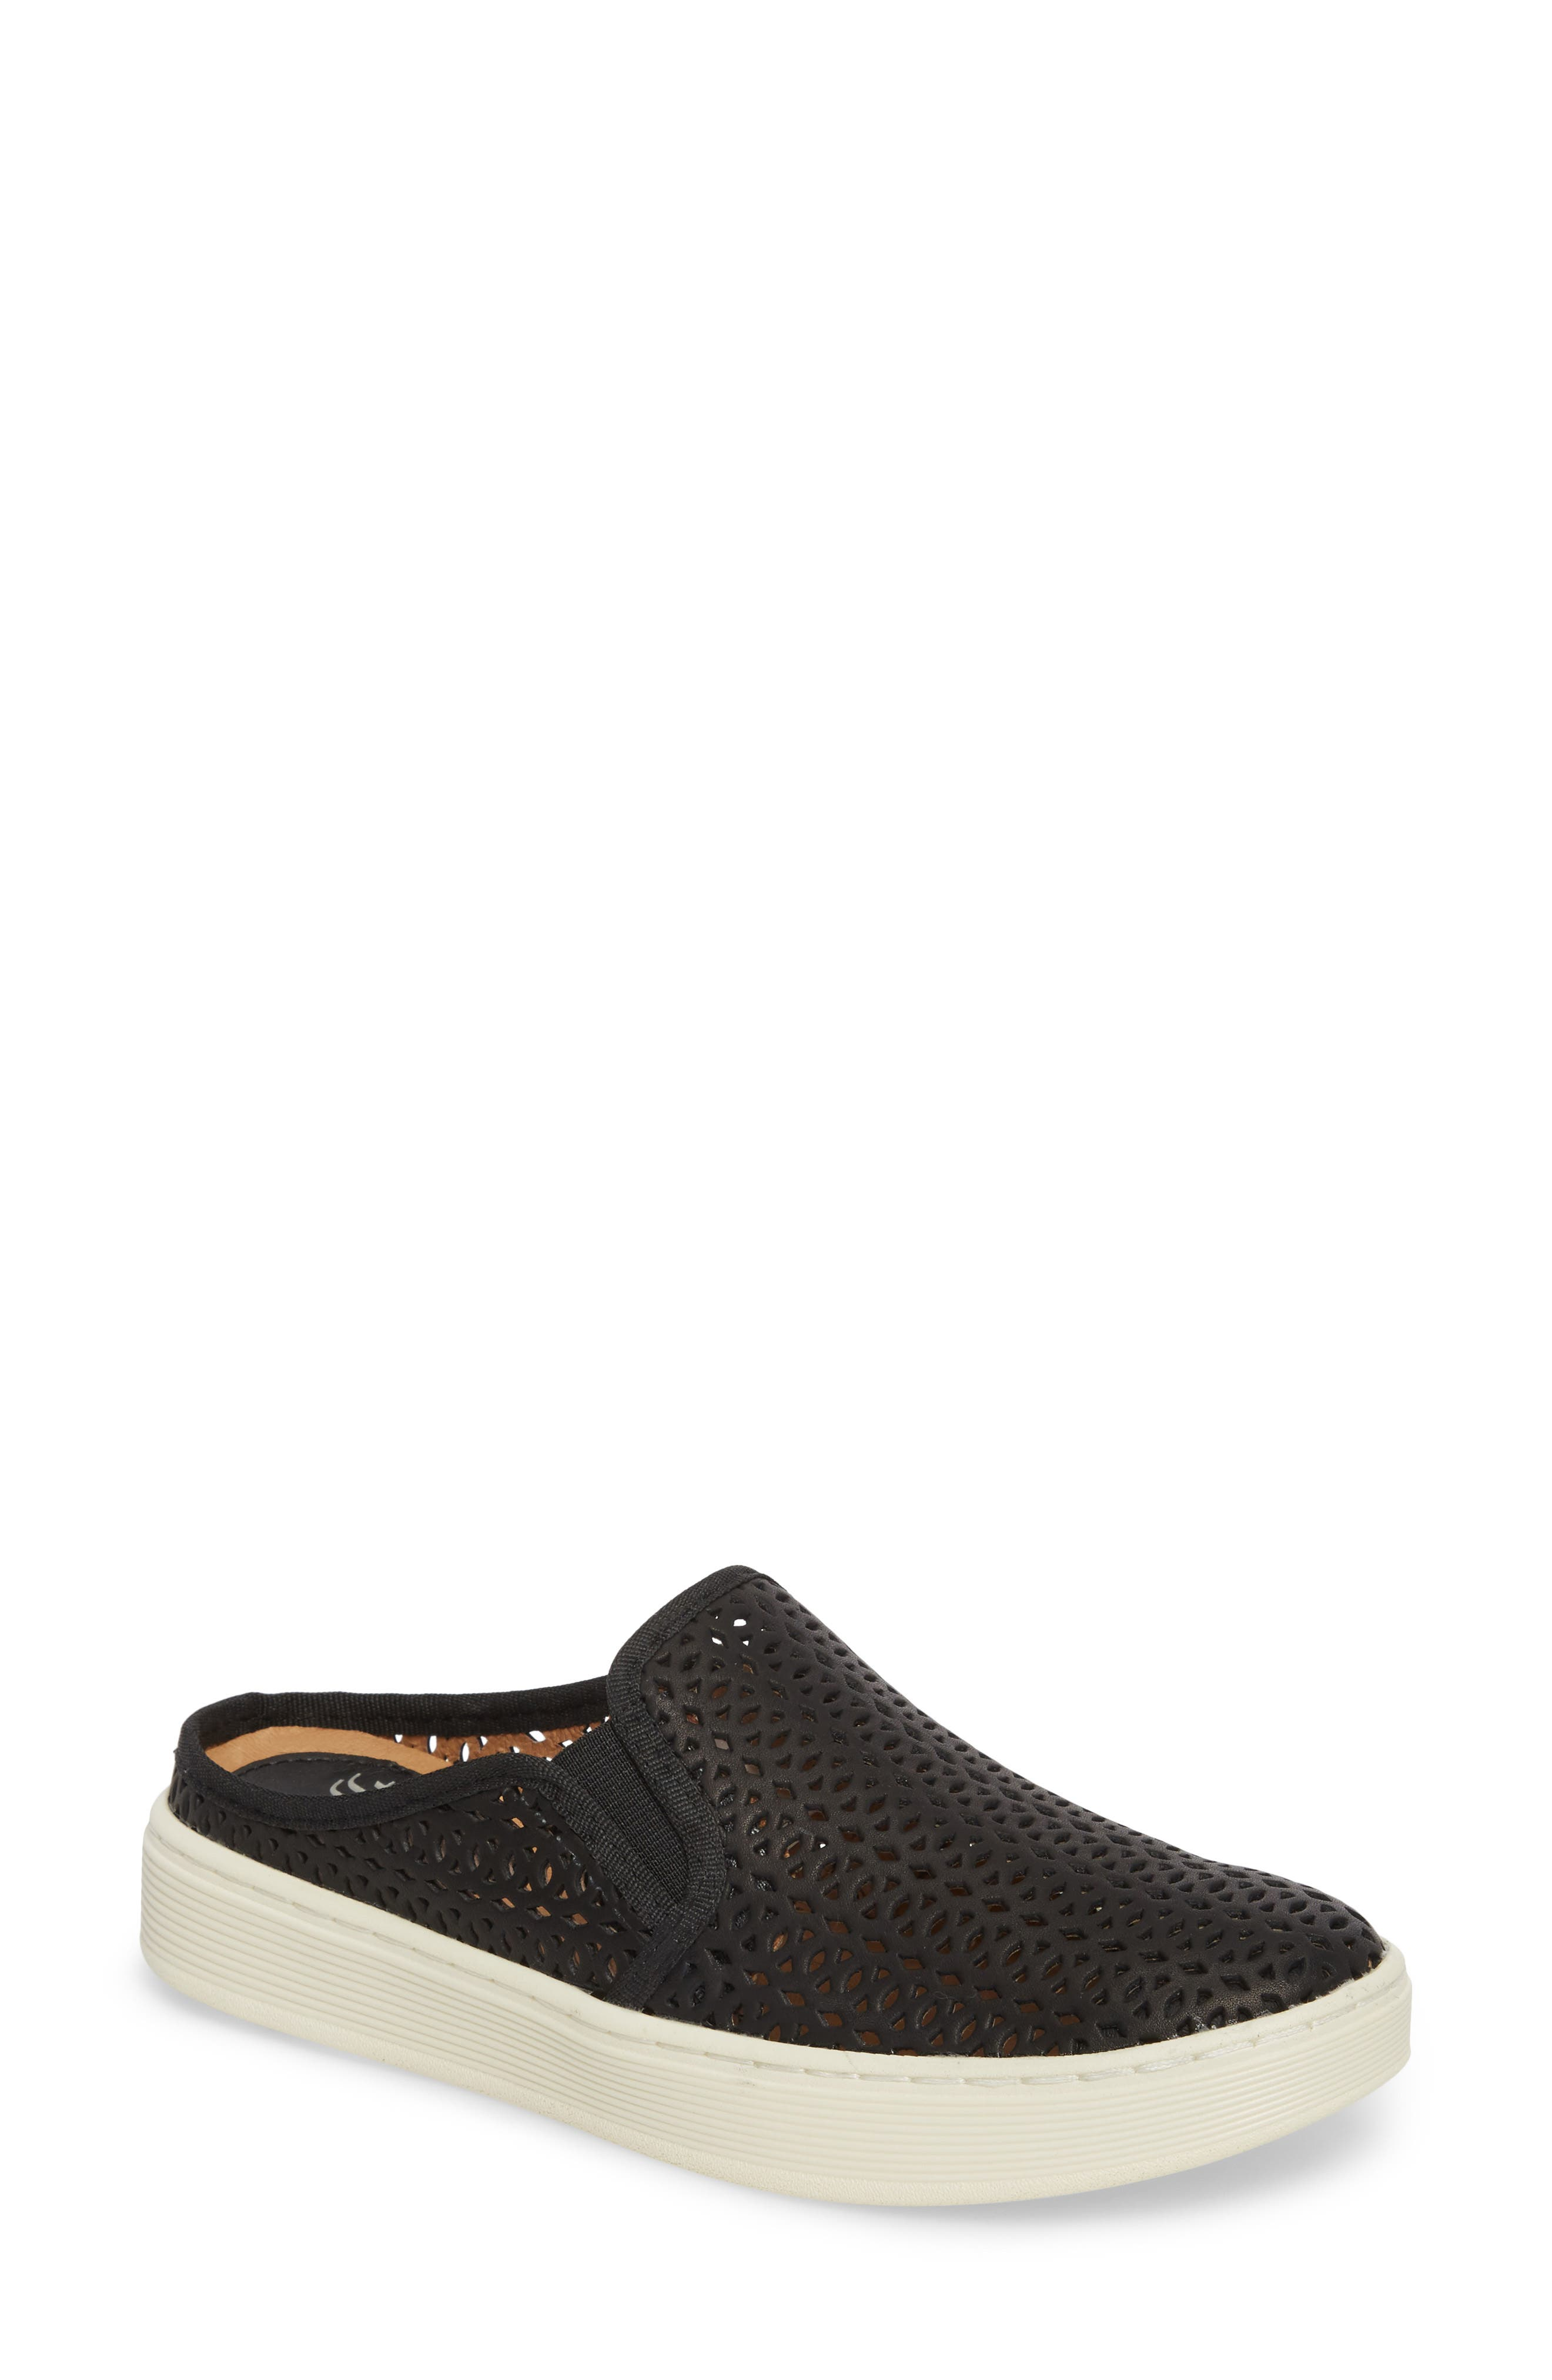 Somers II Sneaker,                         Main,                         color, BLACK LEATHER